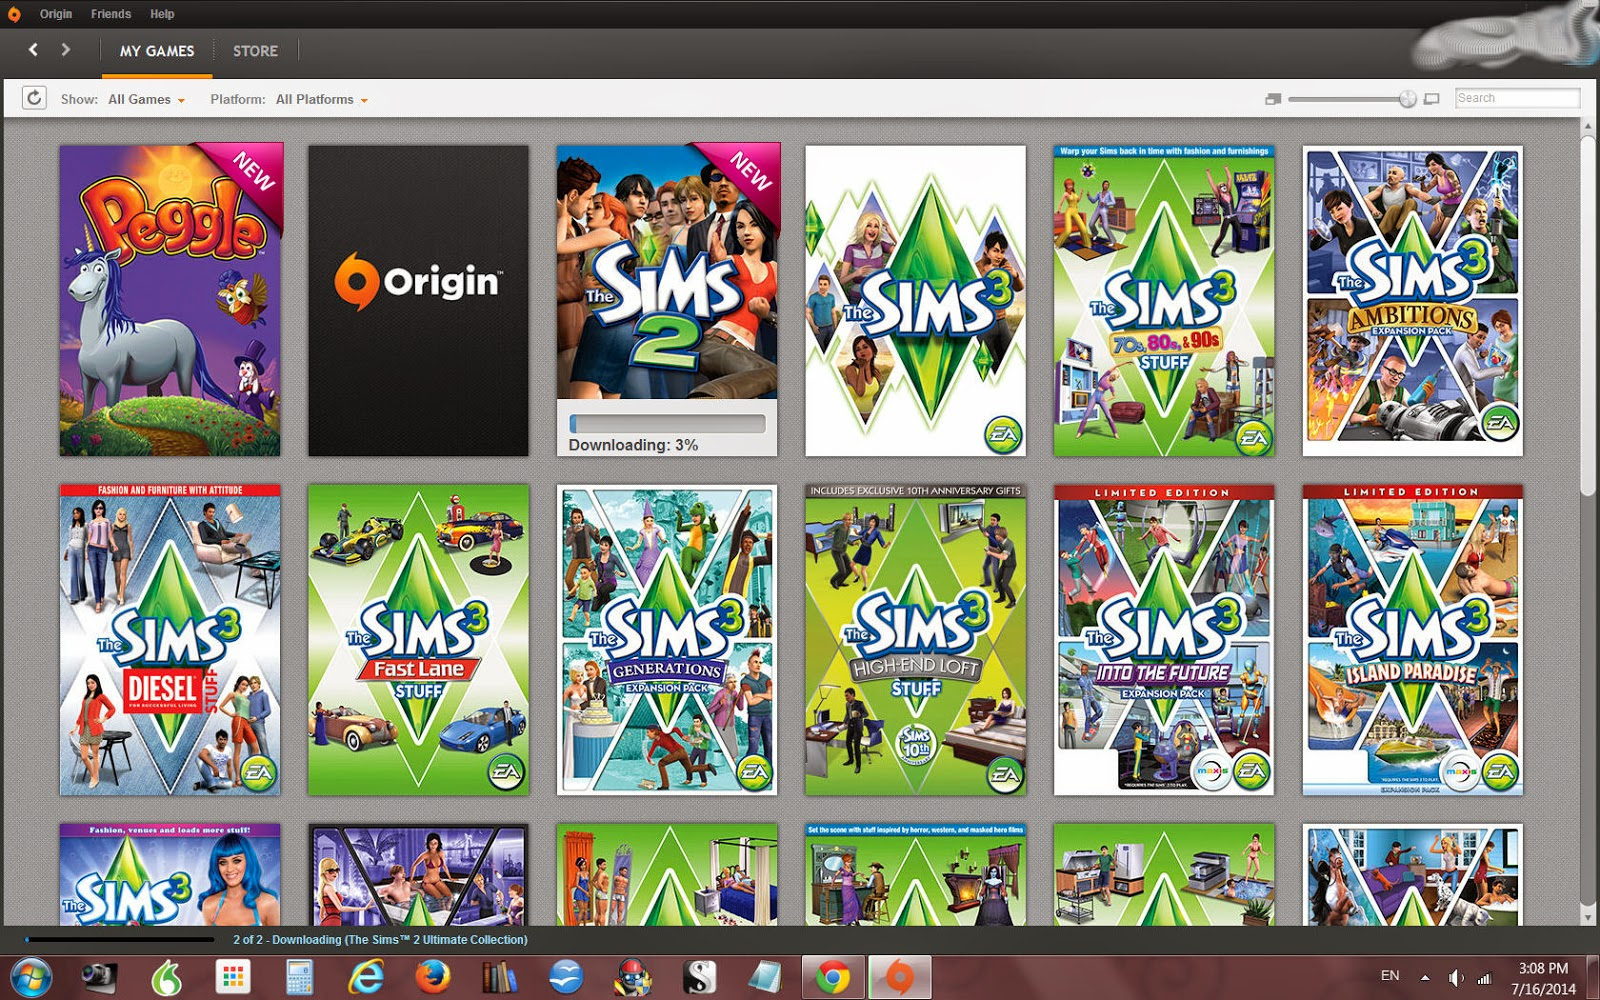 Store Banne Ultima Games 43books 43manga 43anime 43fun The Sims 2 Ultimate Collection